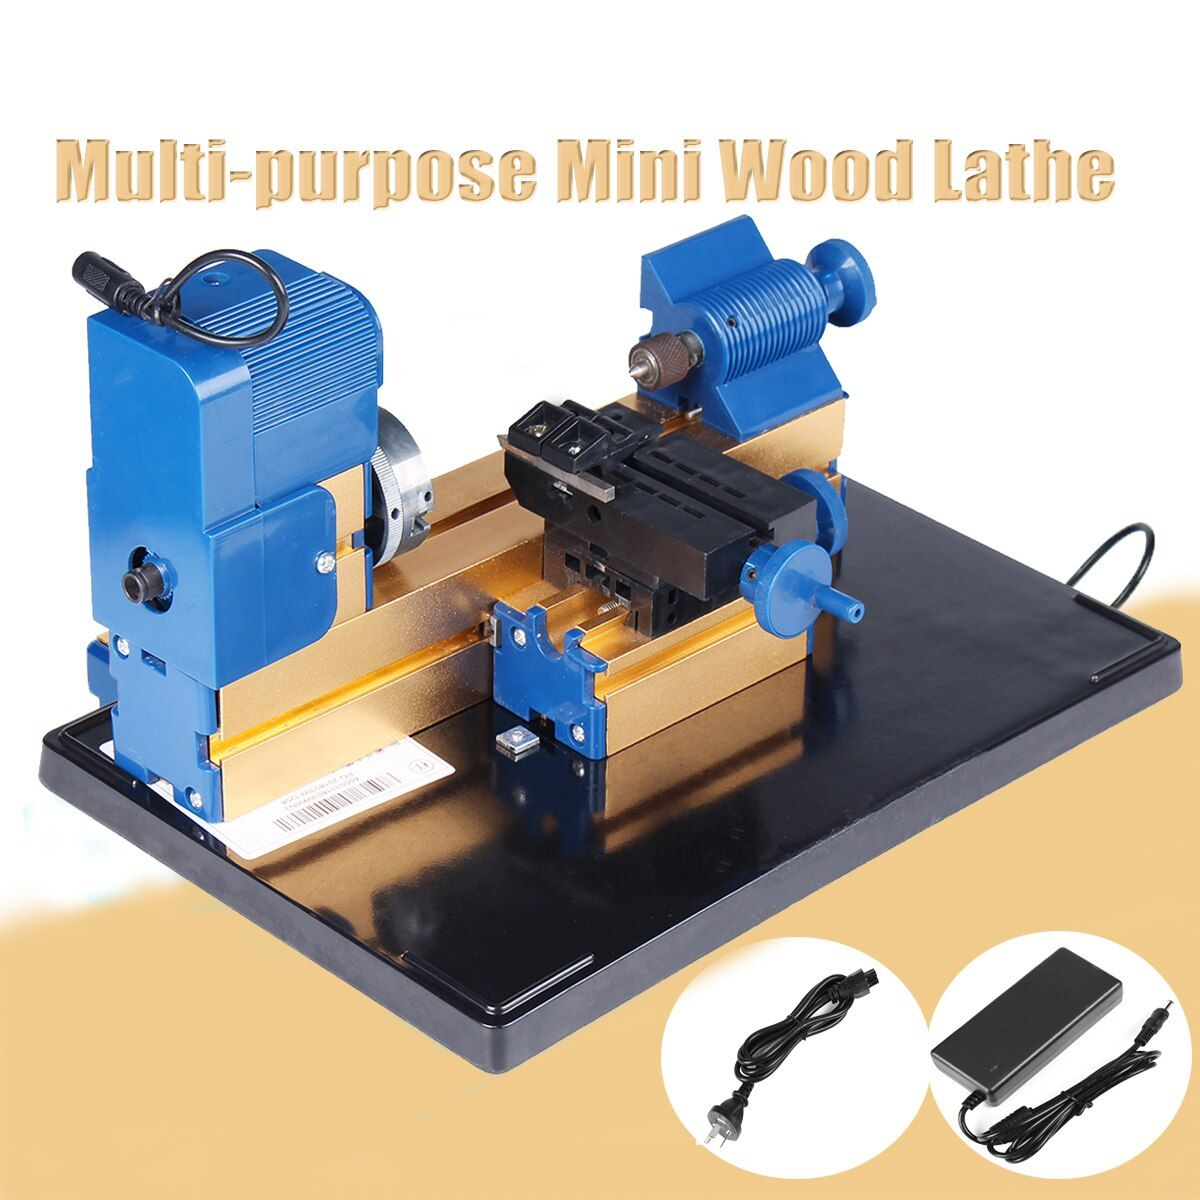 24W DC12V 2A Multifunction Mini Wood Lathe Motorized Jig-saw Bead Grinder Driller Woodworking Turning Cutting Bead Tool